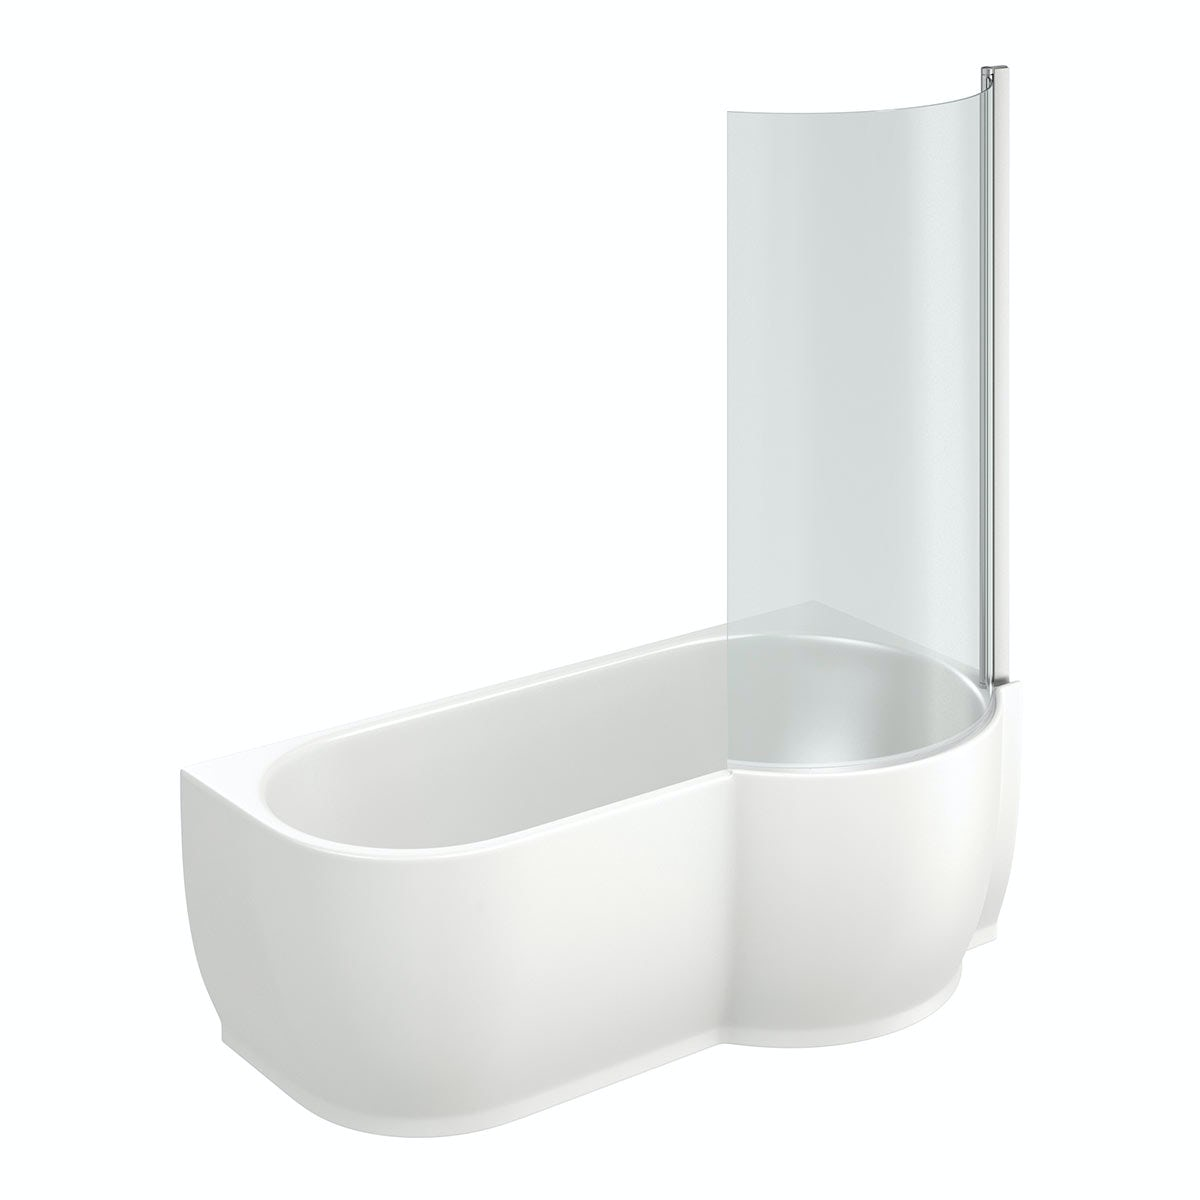 Mode Harrison right handed P shaped shower bath and shower screen